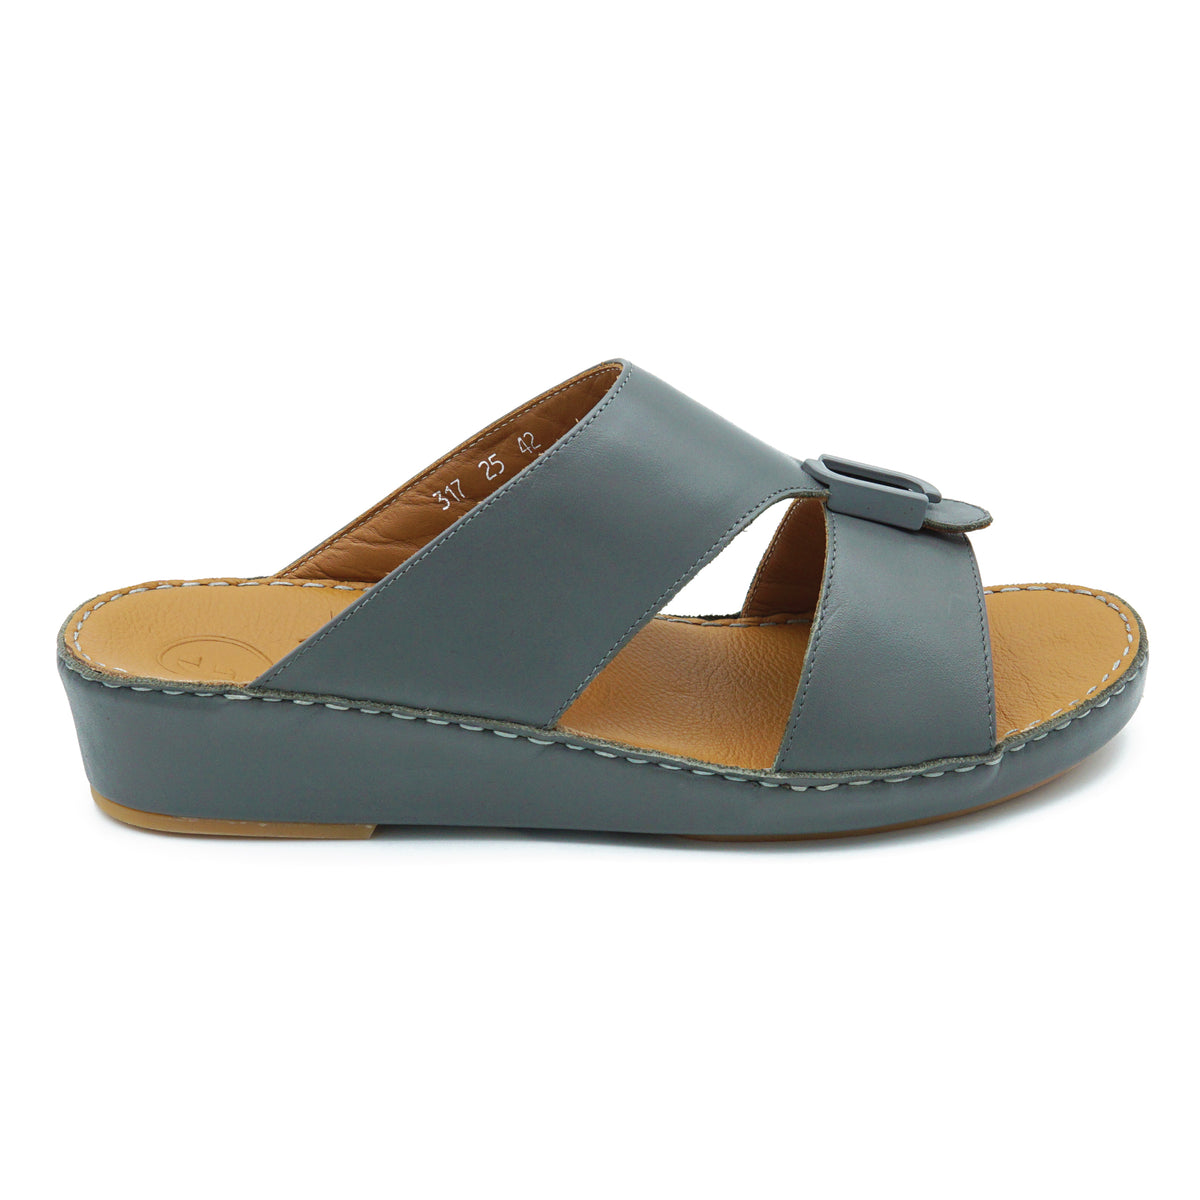 DARK GREY NAPA F BUCKLE ARABIC SANDAL (317-25)